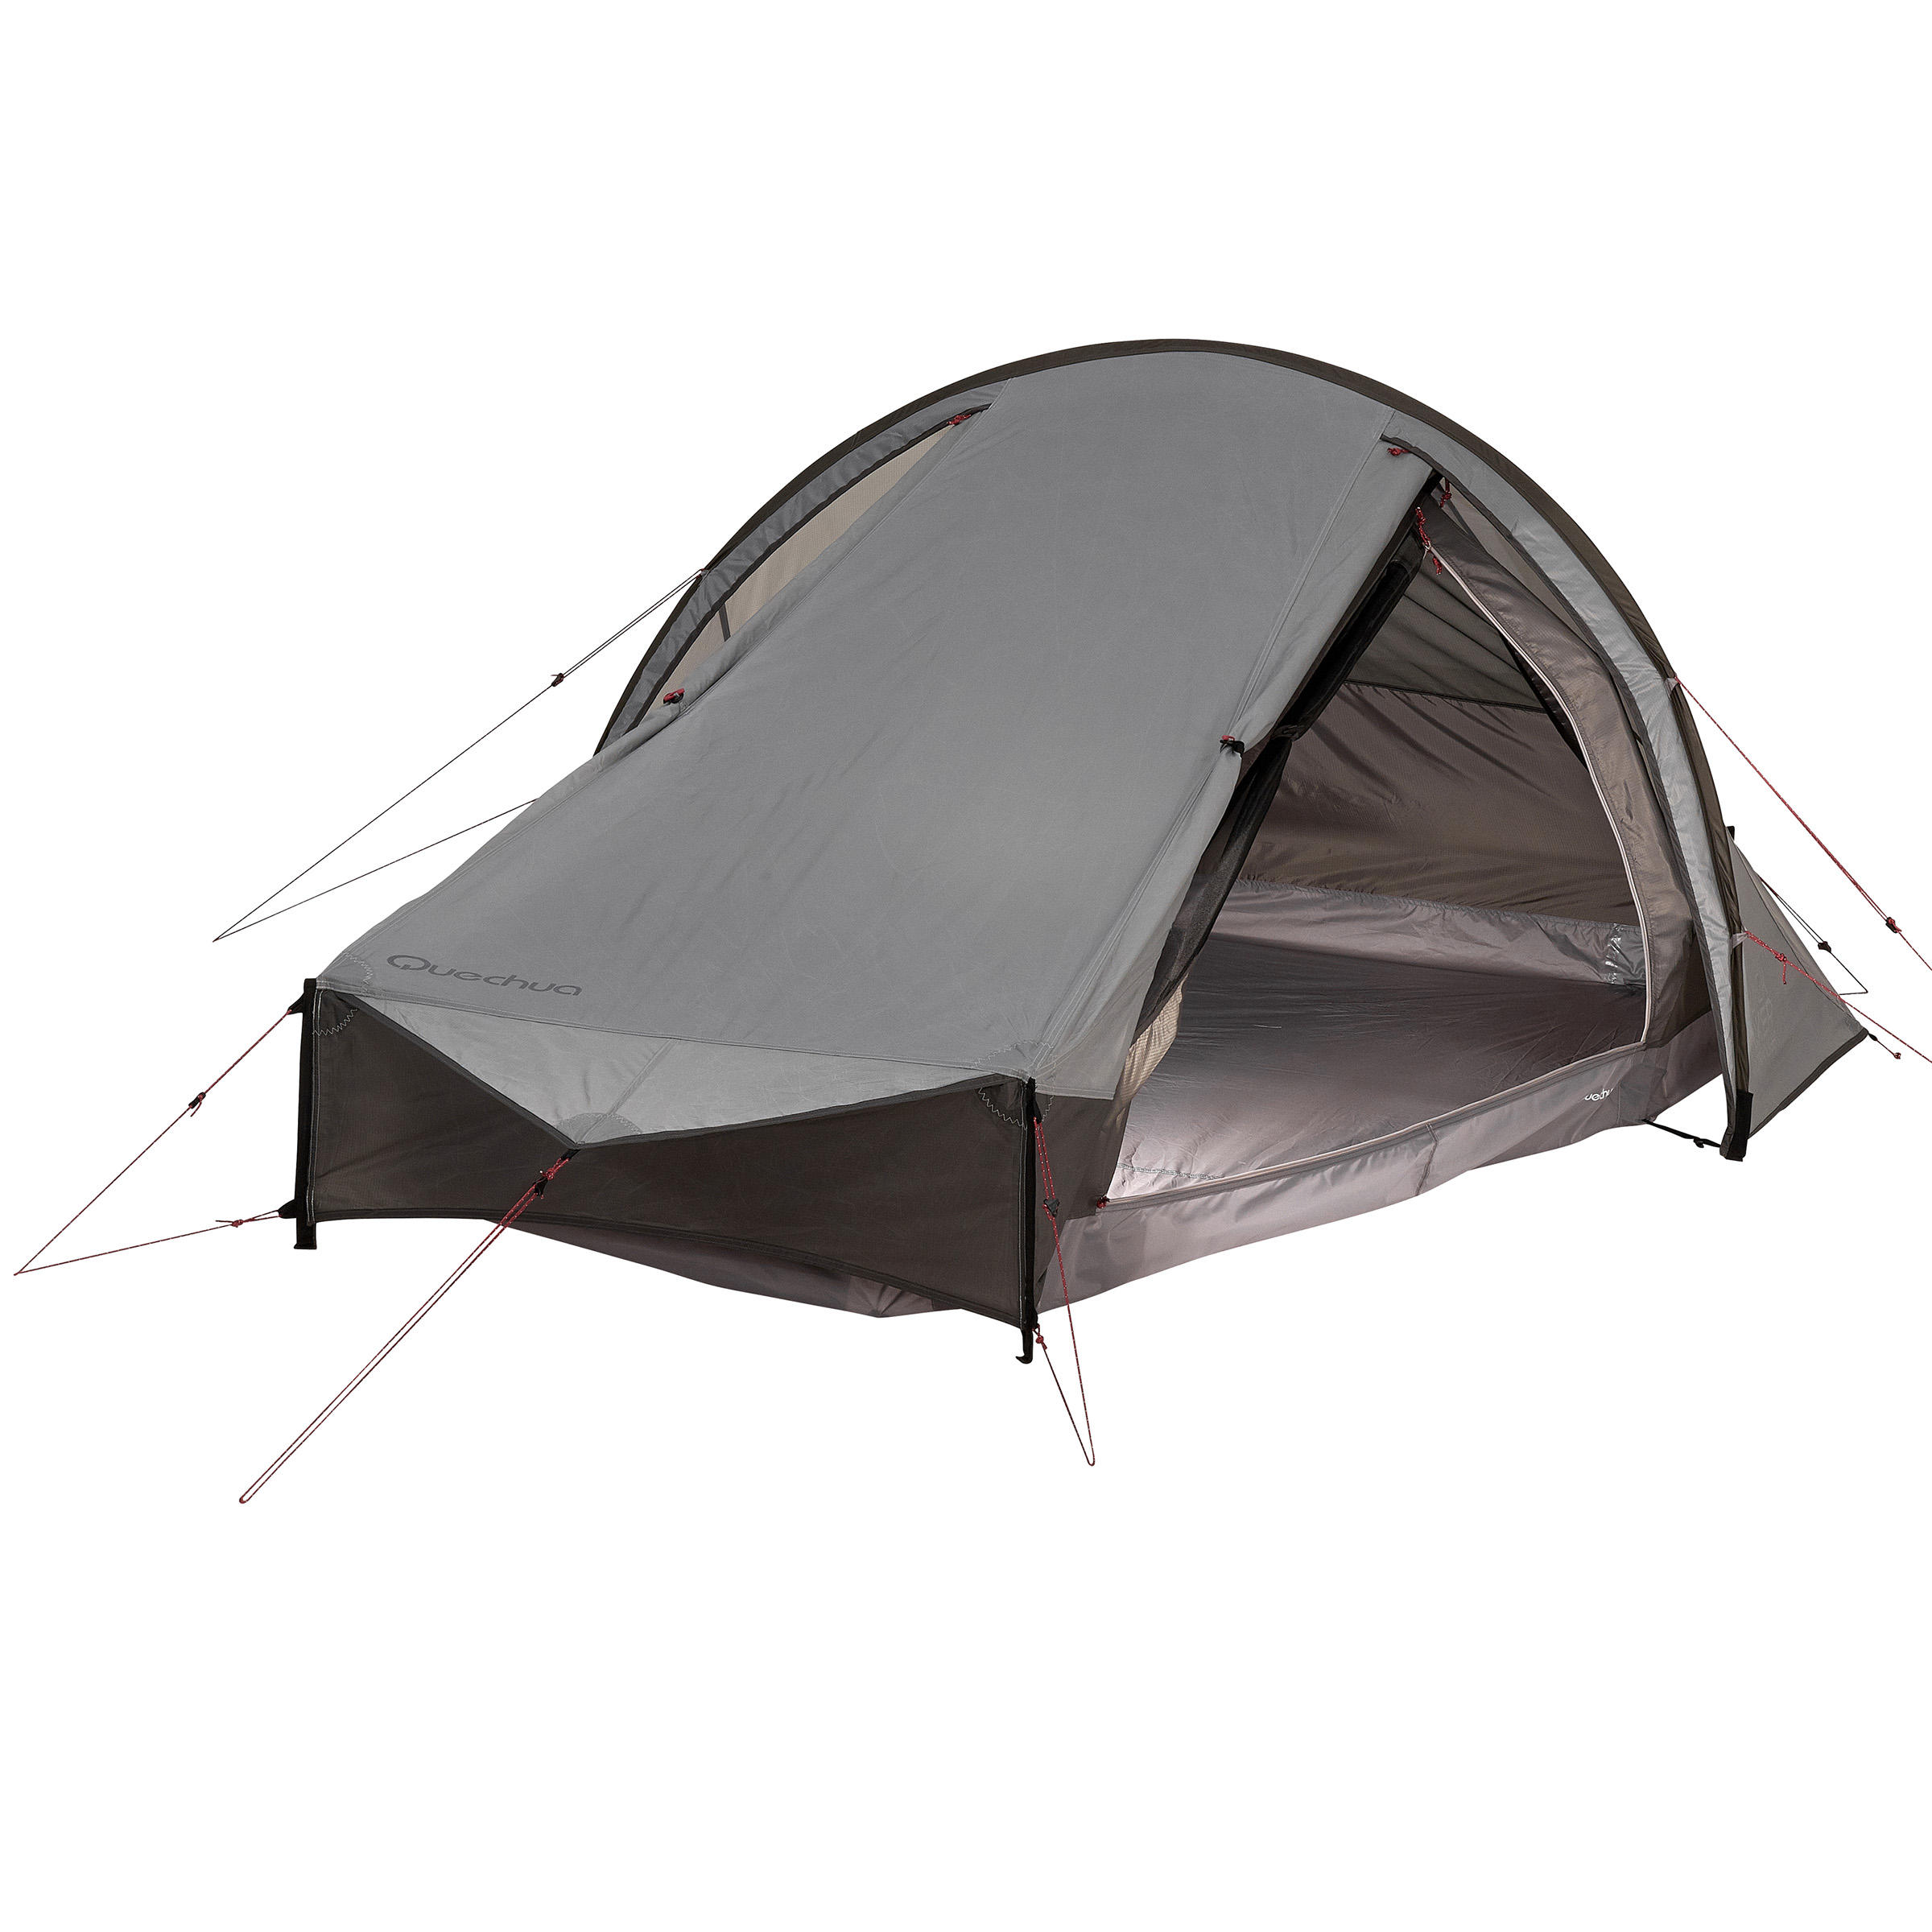 ... Quickhiker Ultralight Bivouacking/Hiking/Trekking Tent - 2-Man Light Grey ...  sc 1 th 225 & 1 to 3 pers tents Quickhiker Ultralight Bivouacking/Hiking ...